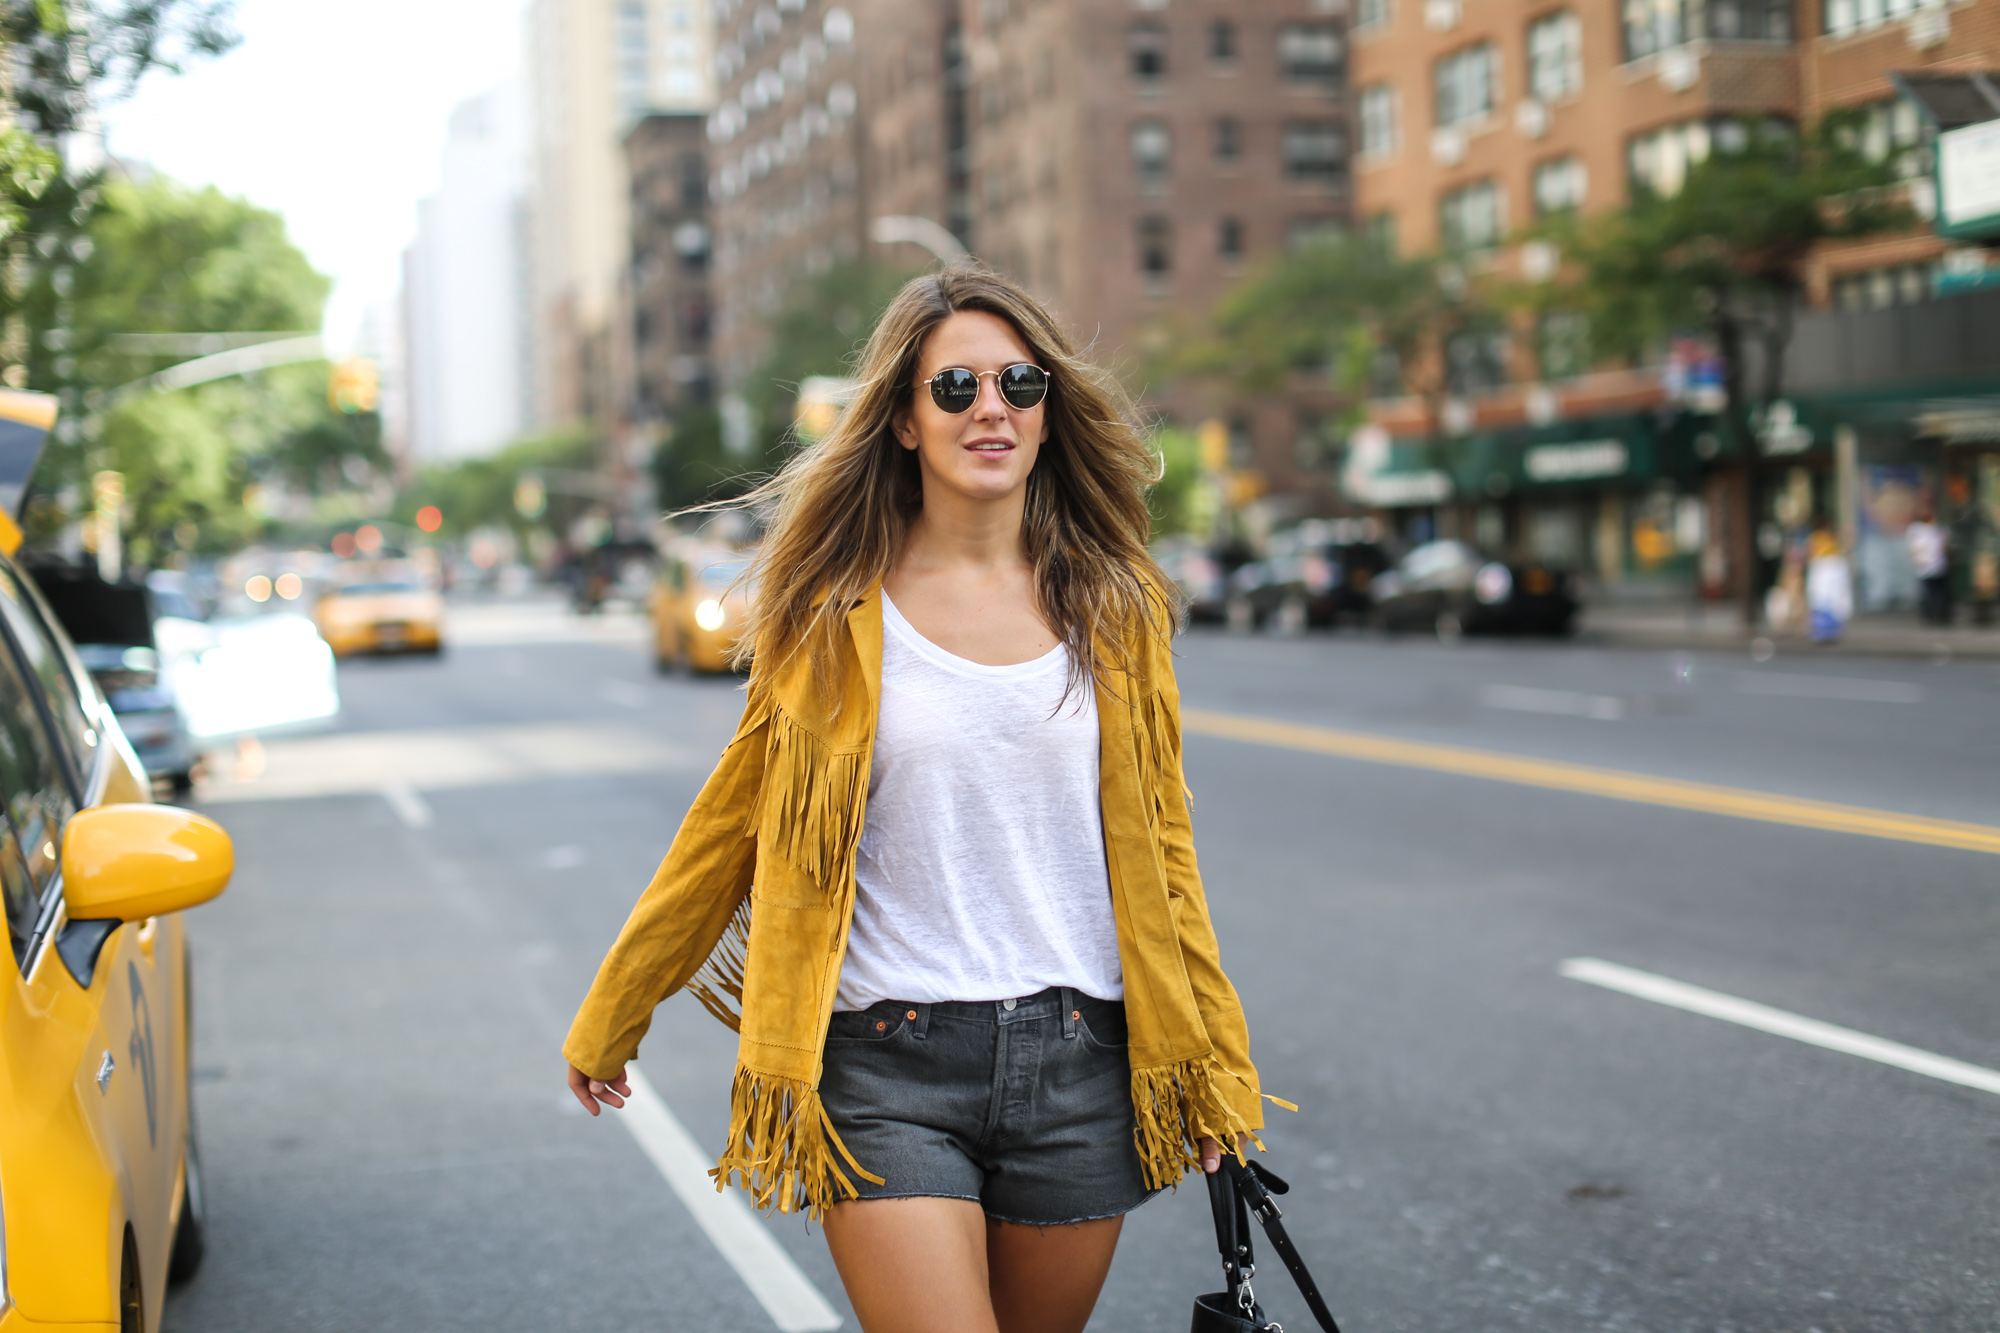 Clochet_streetstyle_suede_fringed_yellow_jacket_levis_501-7